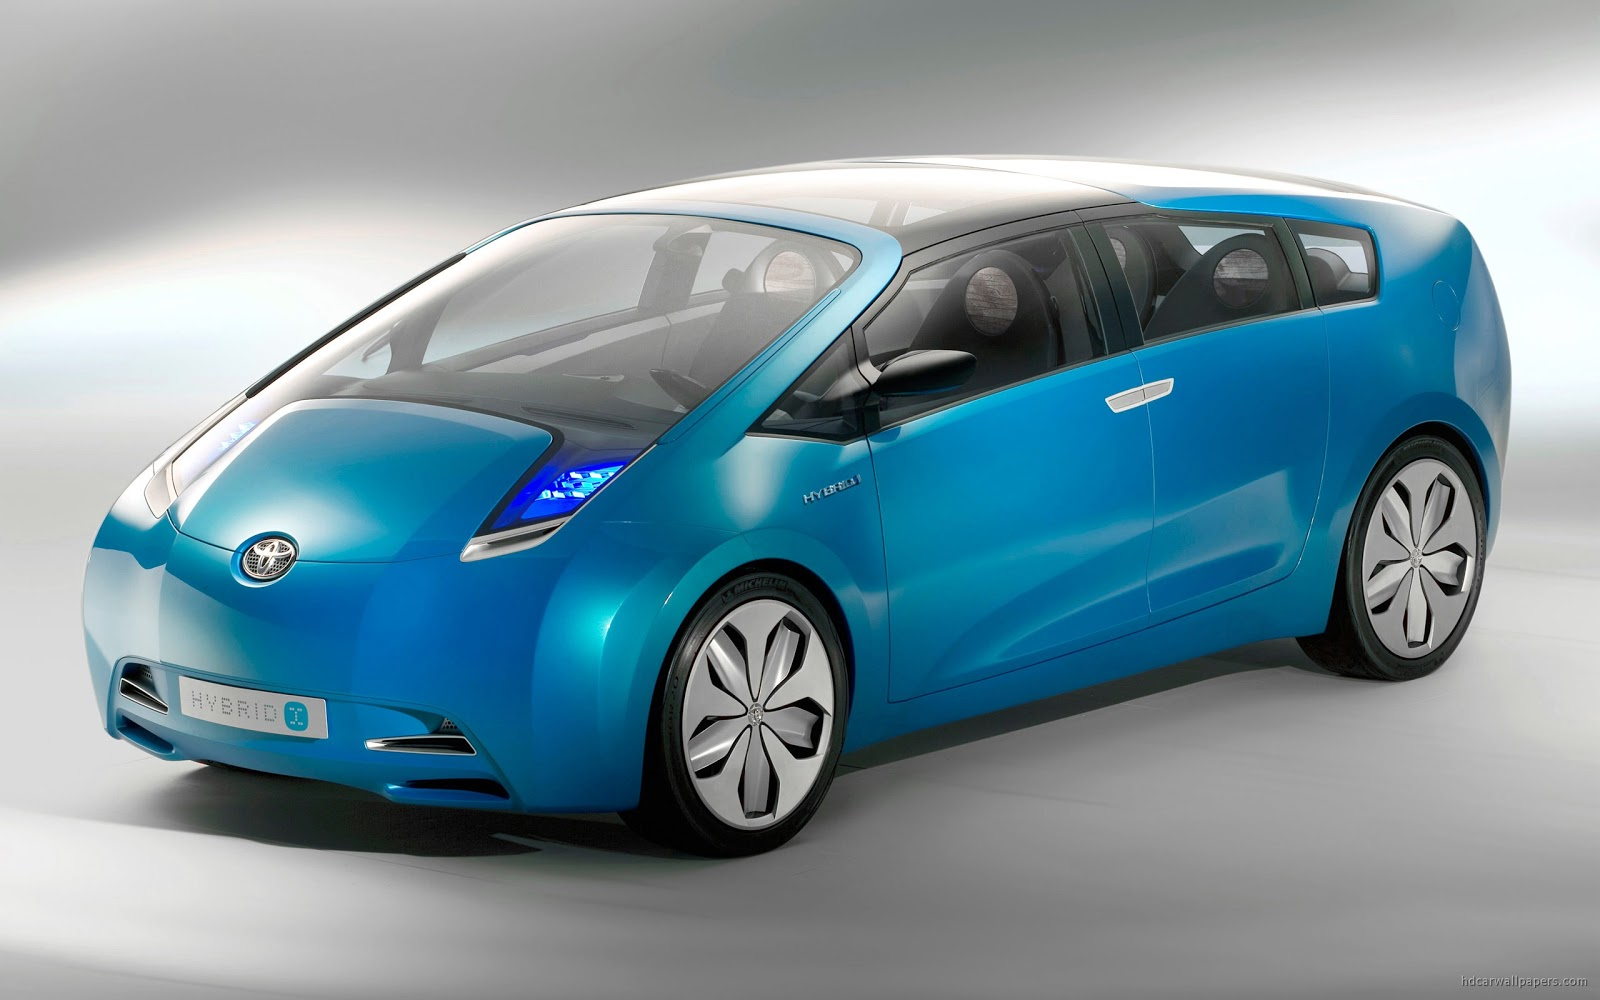 http://2.bp.blogspot.com/-RHkrQeM7g3I/ULdh3jeAq5I/AAAAAAAAAtw/XdHHn5cX4yc/s1600/Download+Toyota+Hybrid+X+Concept+HD+Widescreen+car+wallpaper.jpg